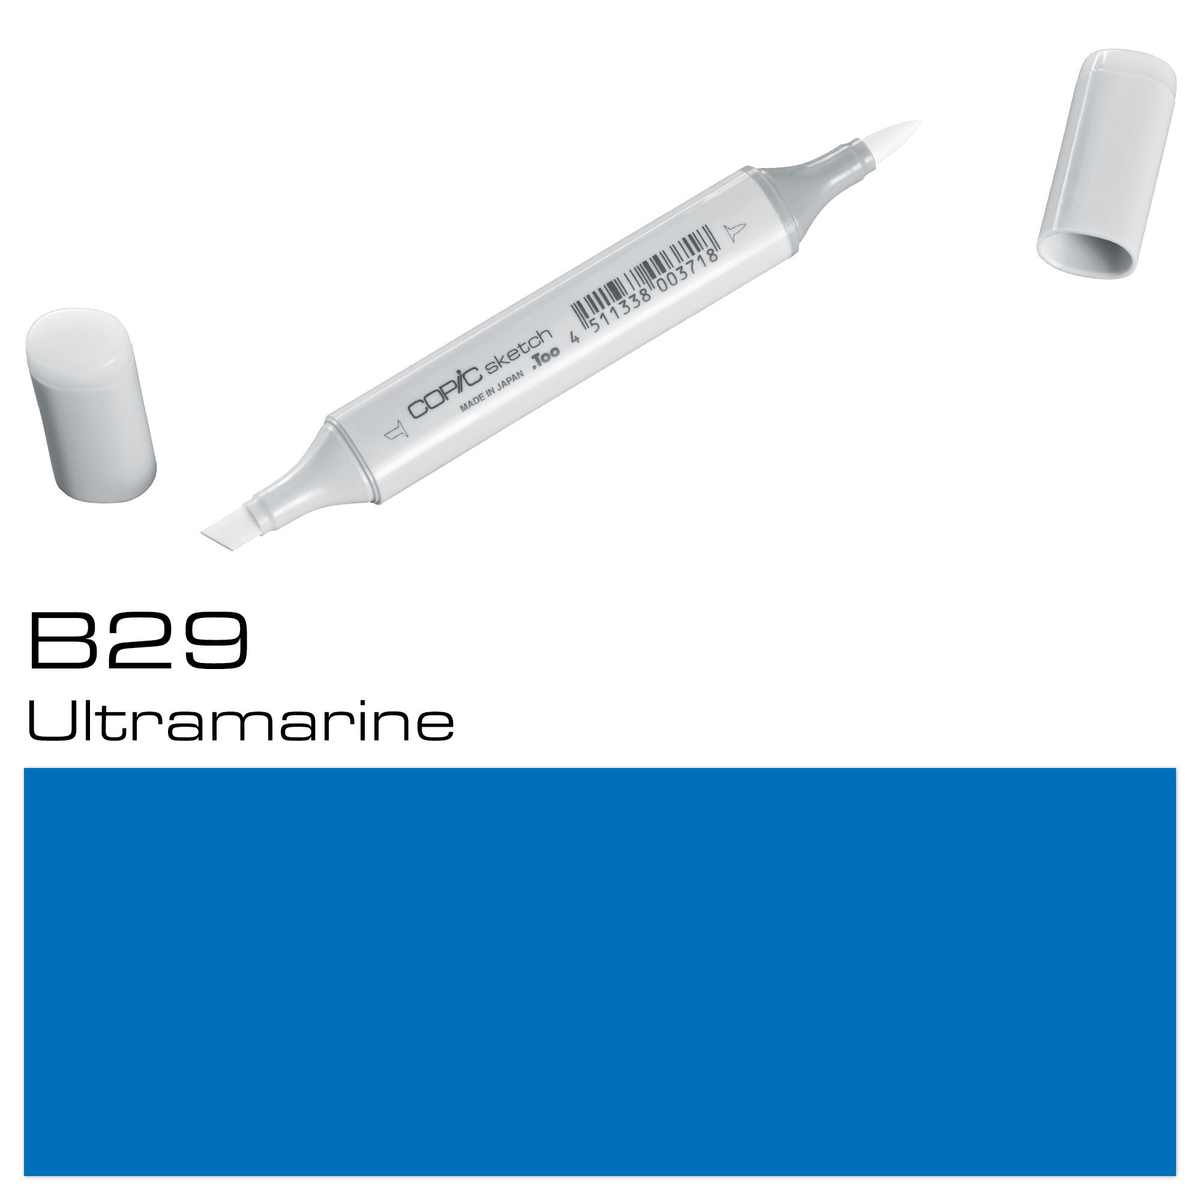 Copic Sketch B29 ultramarine